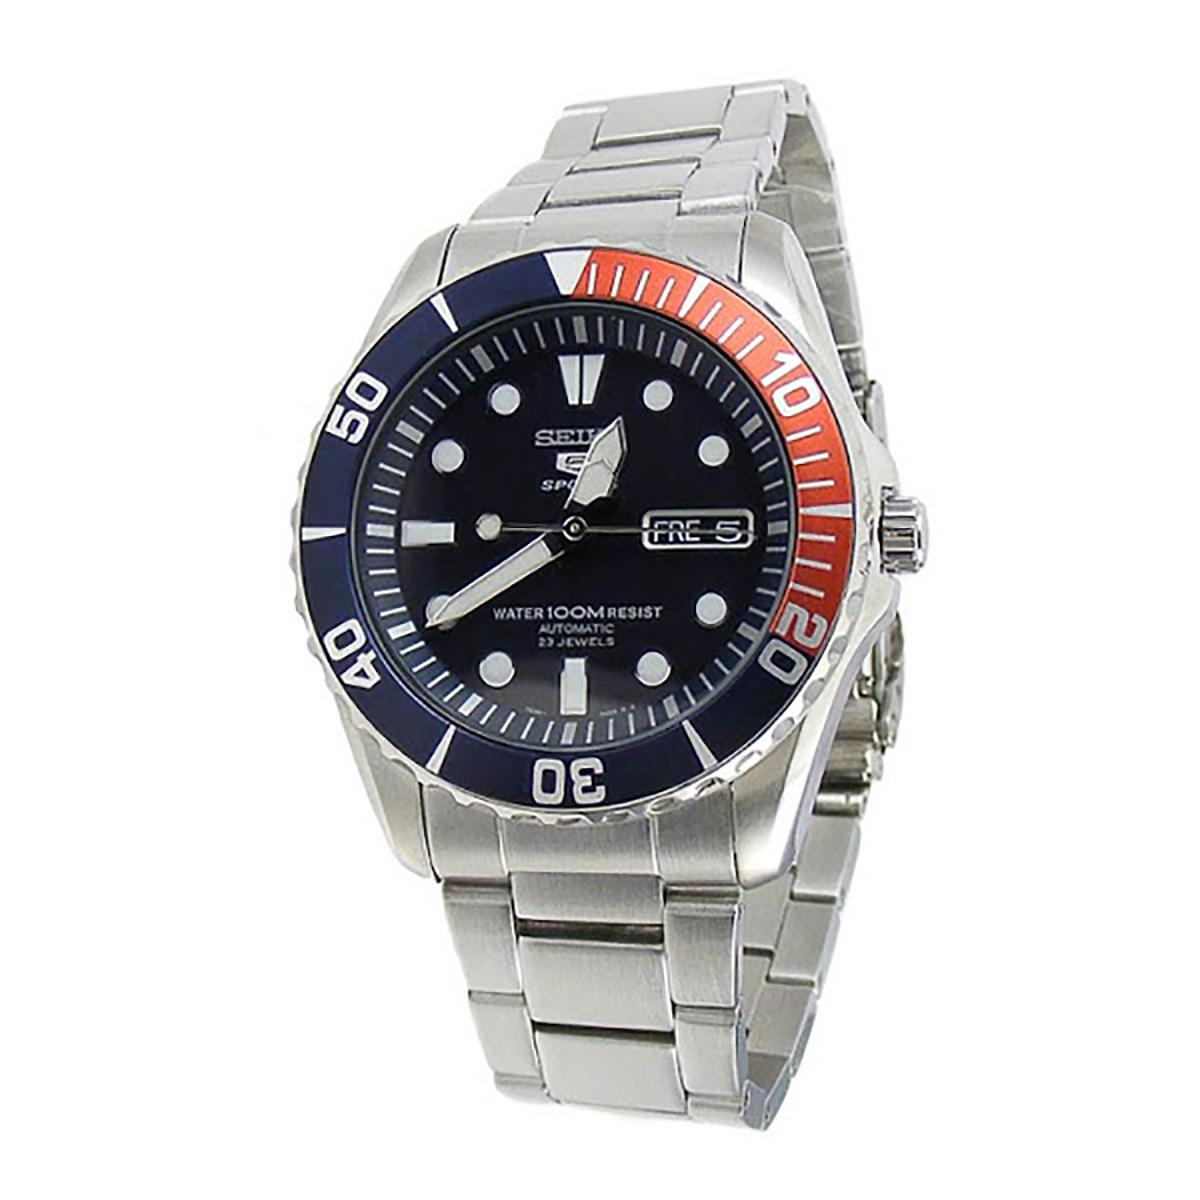 Seiko Men Watches Price In Malaysia Best Lazada Automatic Limited Edition Diver 200m Srp510k1 5 Sports Silver Stainless Steel Case Bracelet Mens Snzf15k1